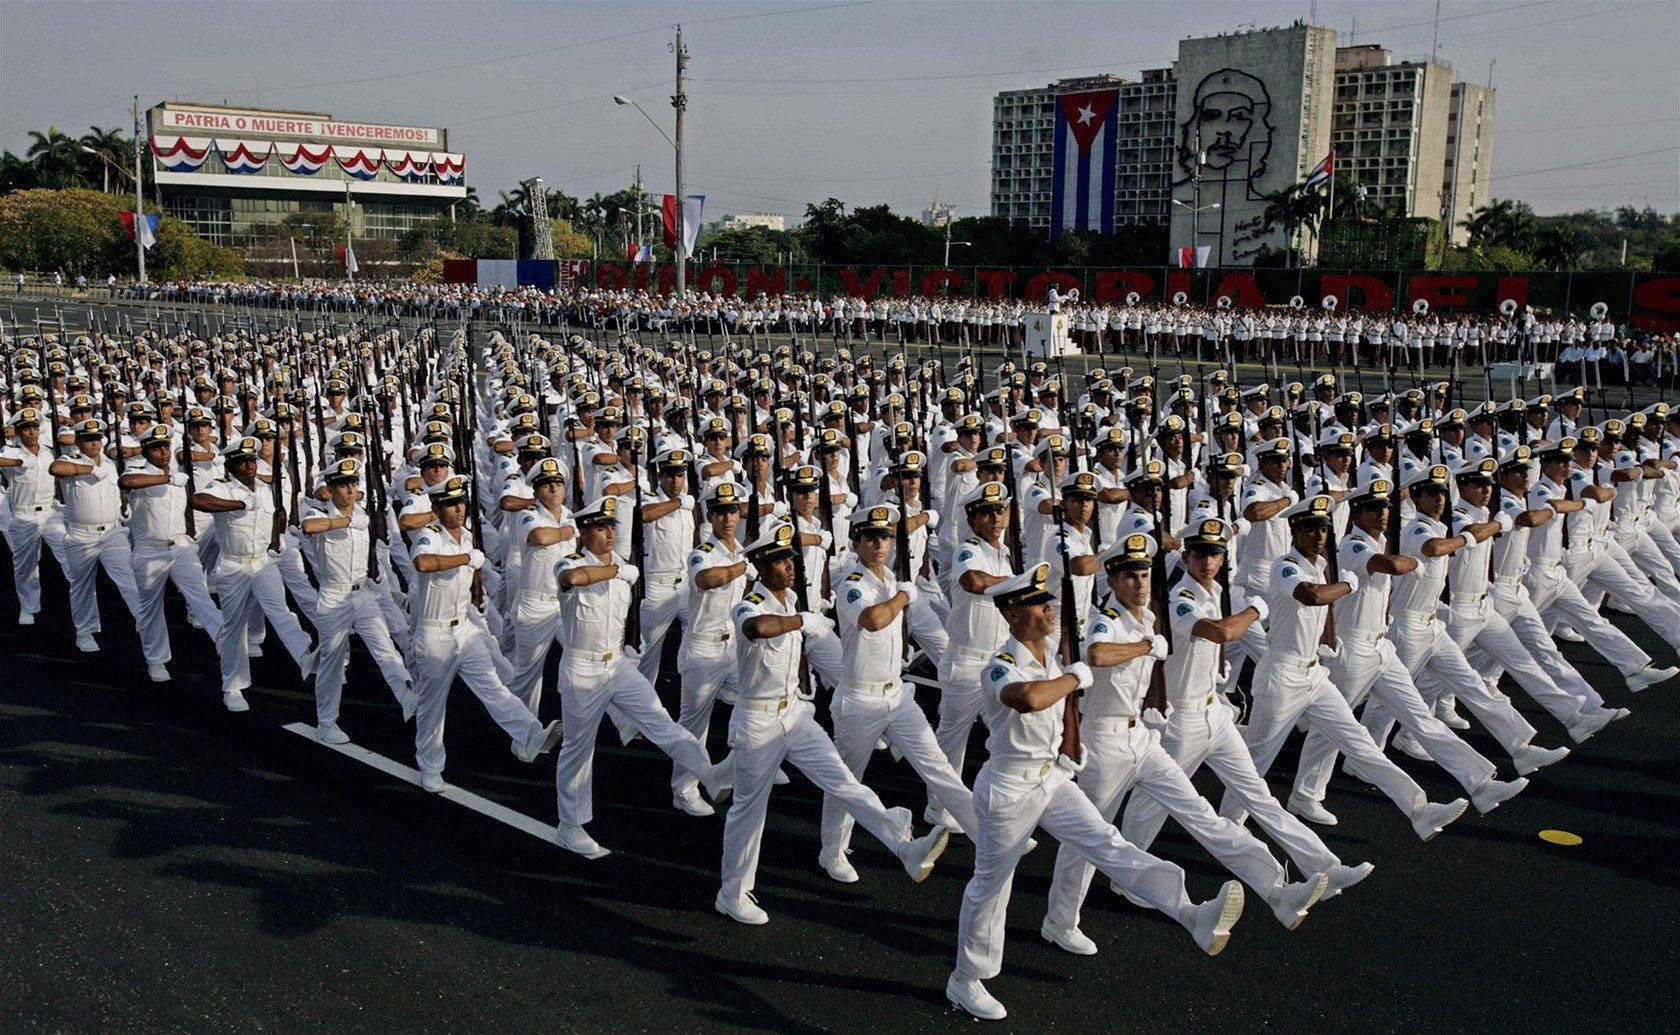 Cuban Navy Cadets Of The Granma Naval Academy Marching Through The Plaza De La Revolución At The 50th Anniversary Parade For The 1961 Raúl Castro Cuba Castro